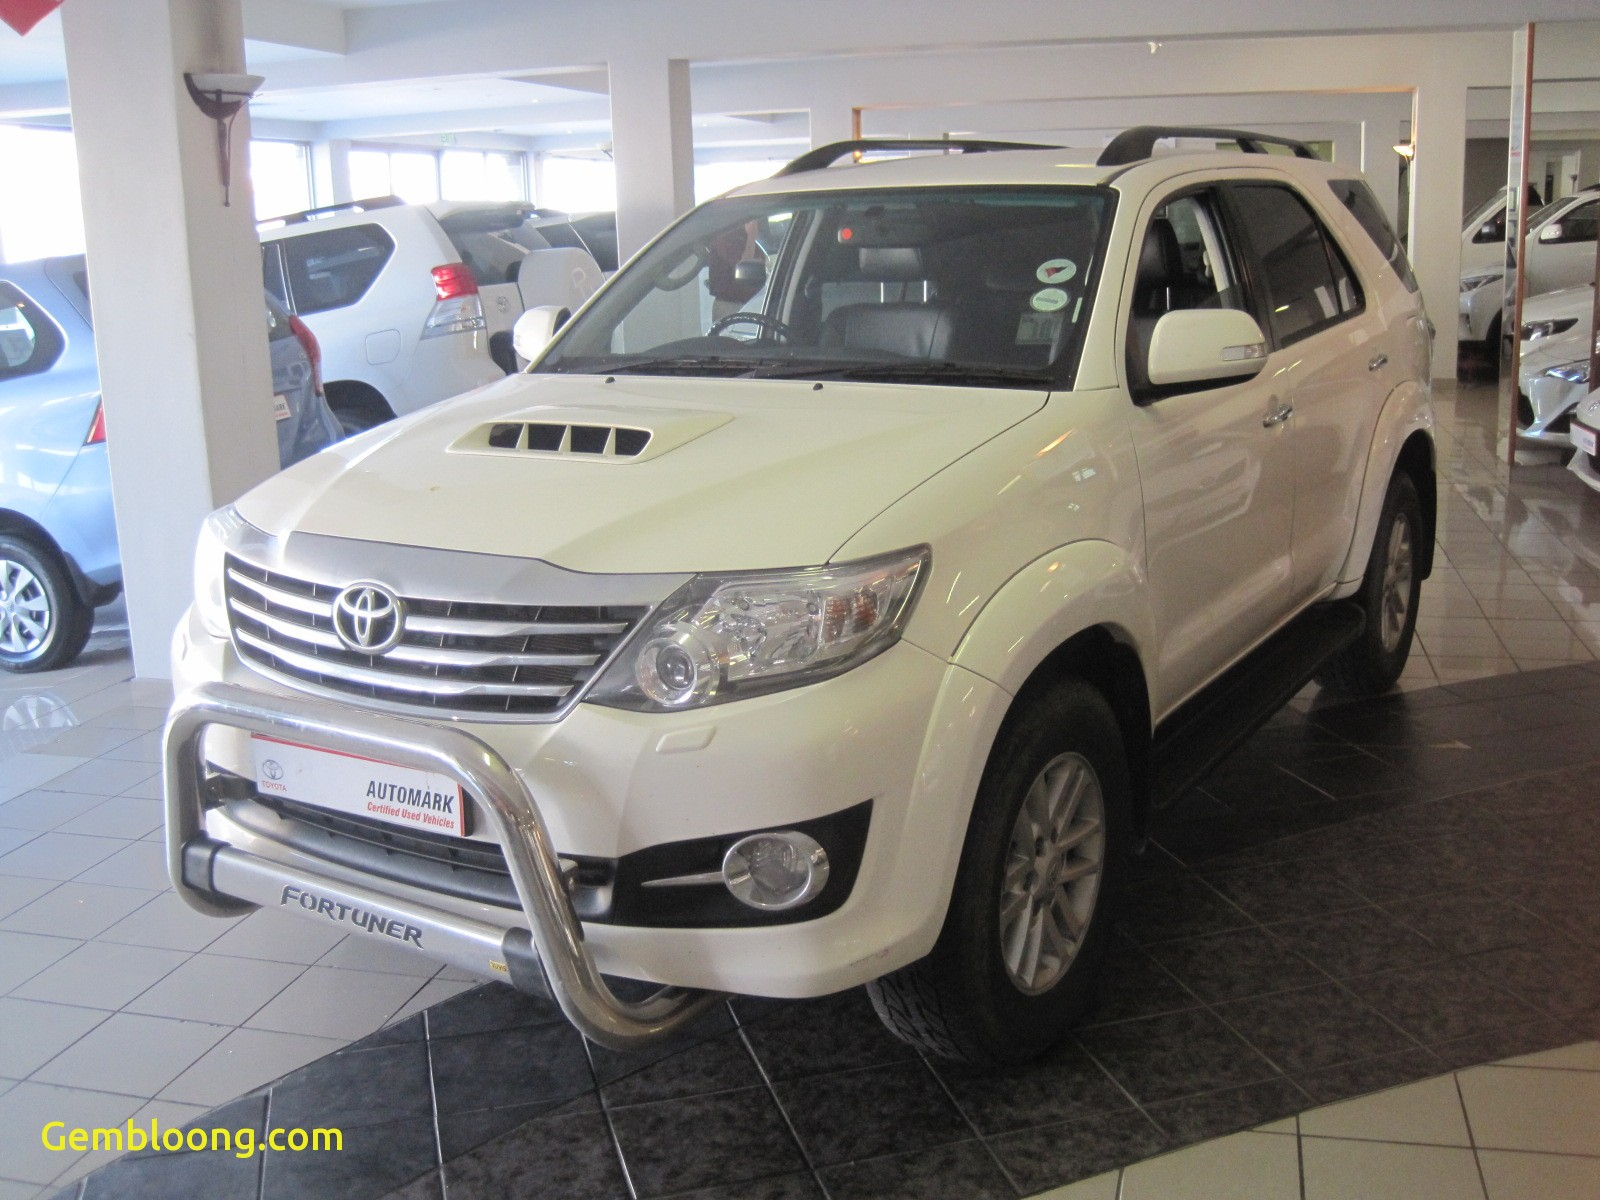 cars for sale by gumtree awesome gumtree used vehicles for sale cars olx cars